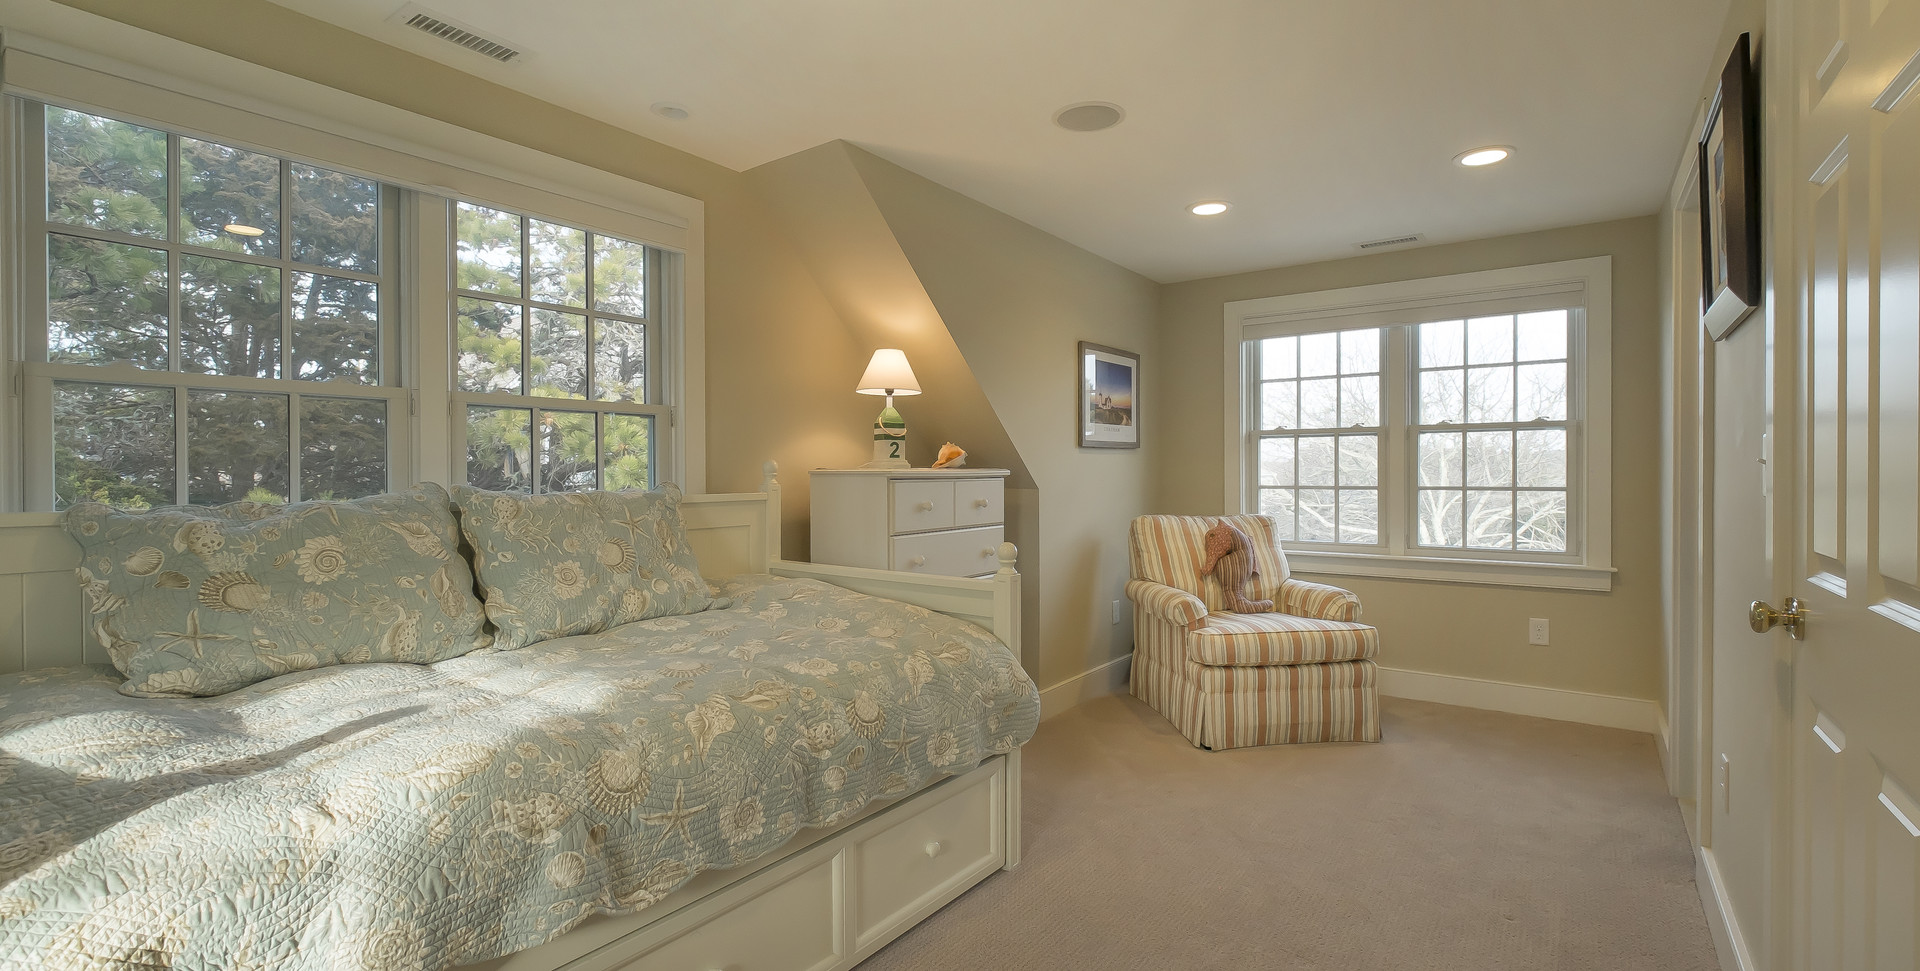 Ridgevale Beach, West Chatham, MA, Home Remodel, Cape Cod guest bedroom